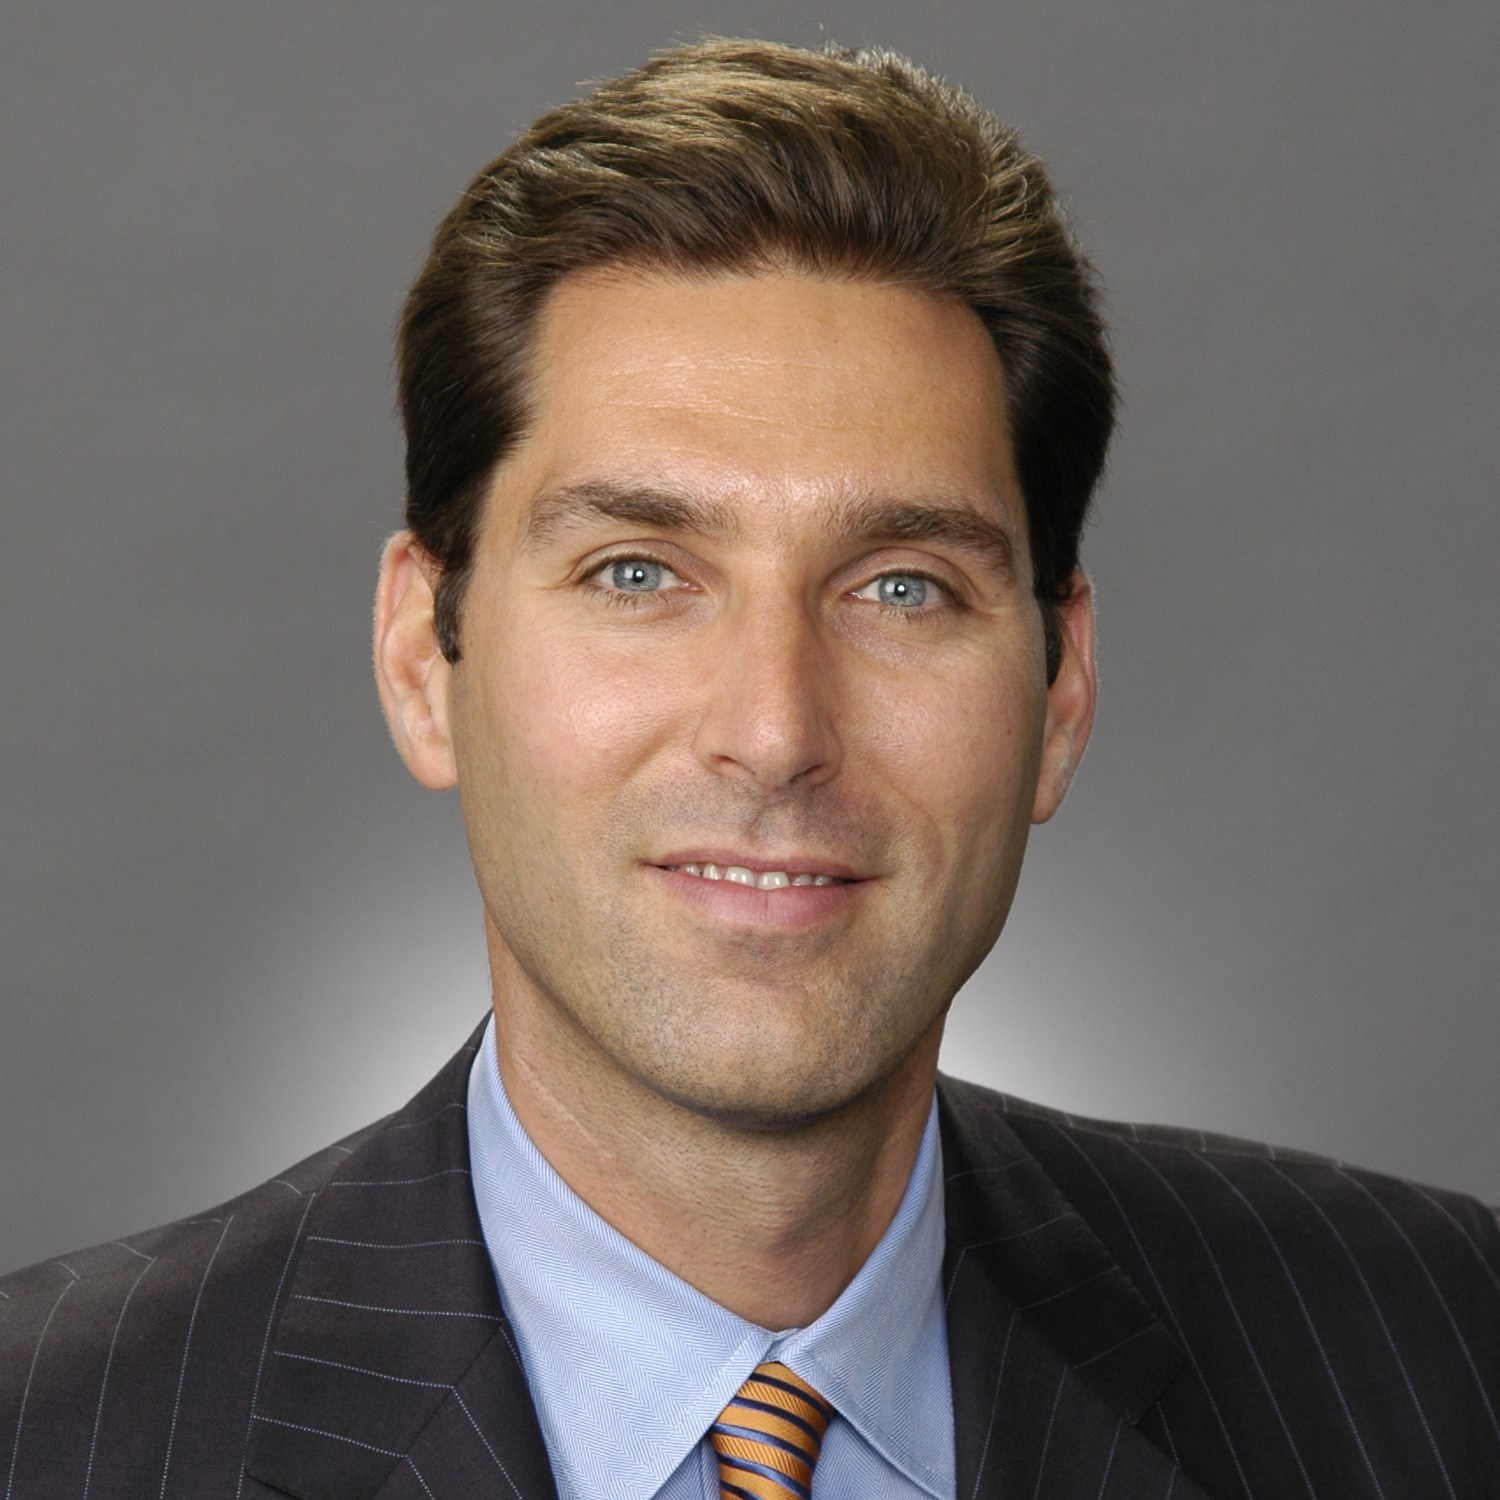 Stephen Ubl is president and CEO of PhRMA.